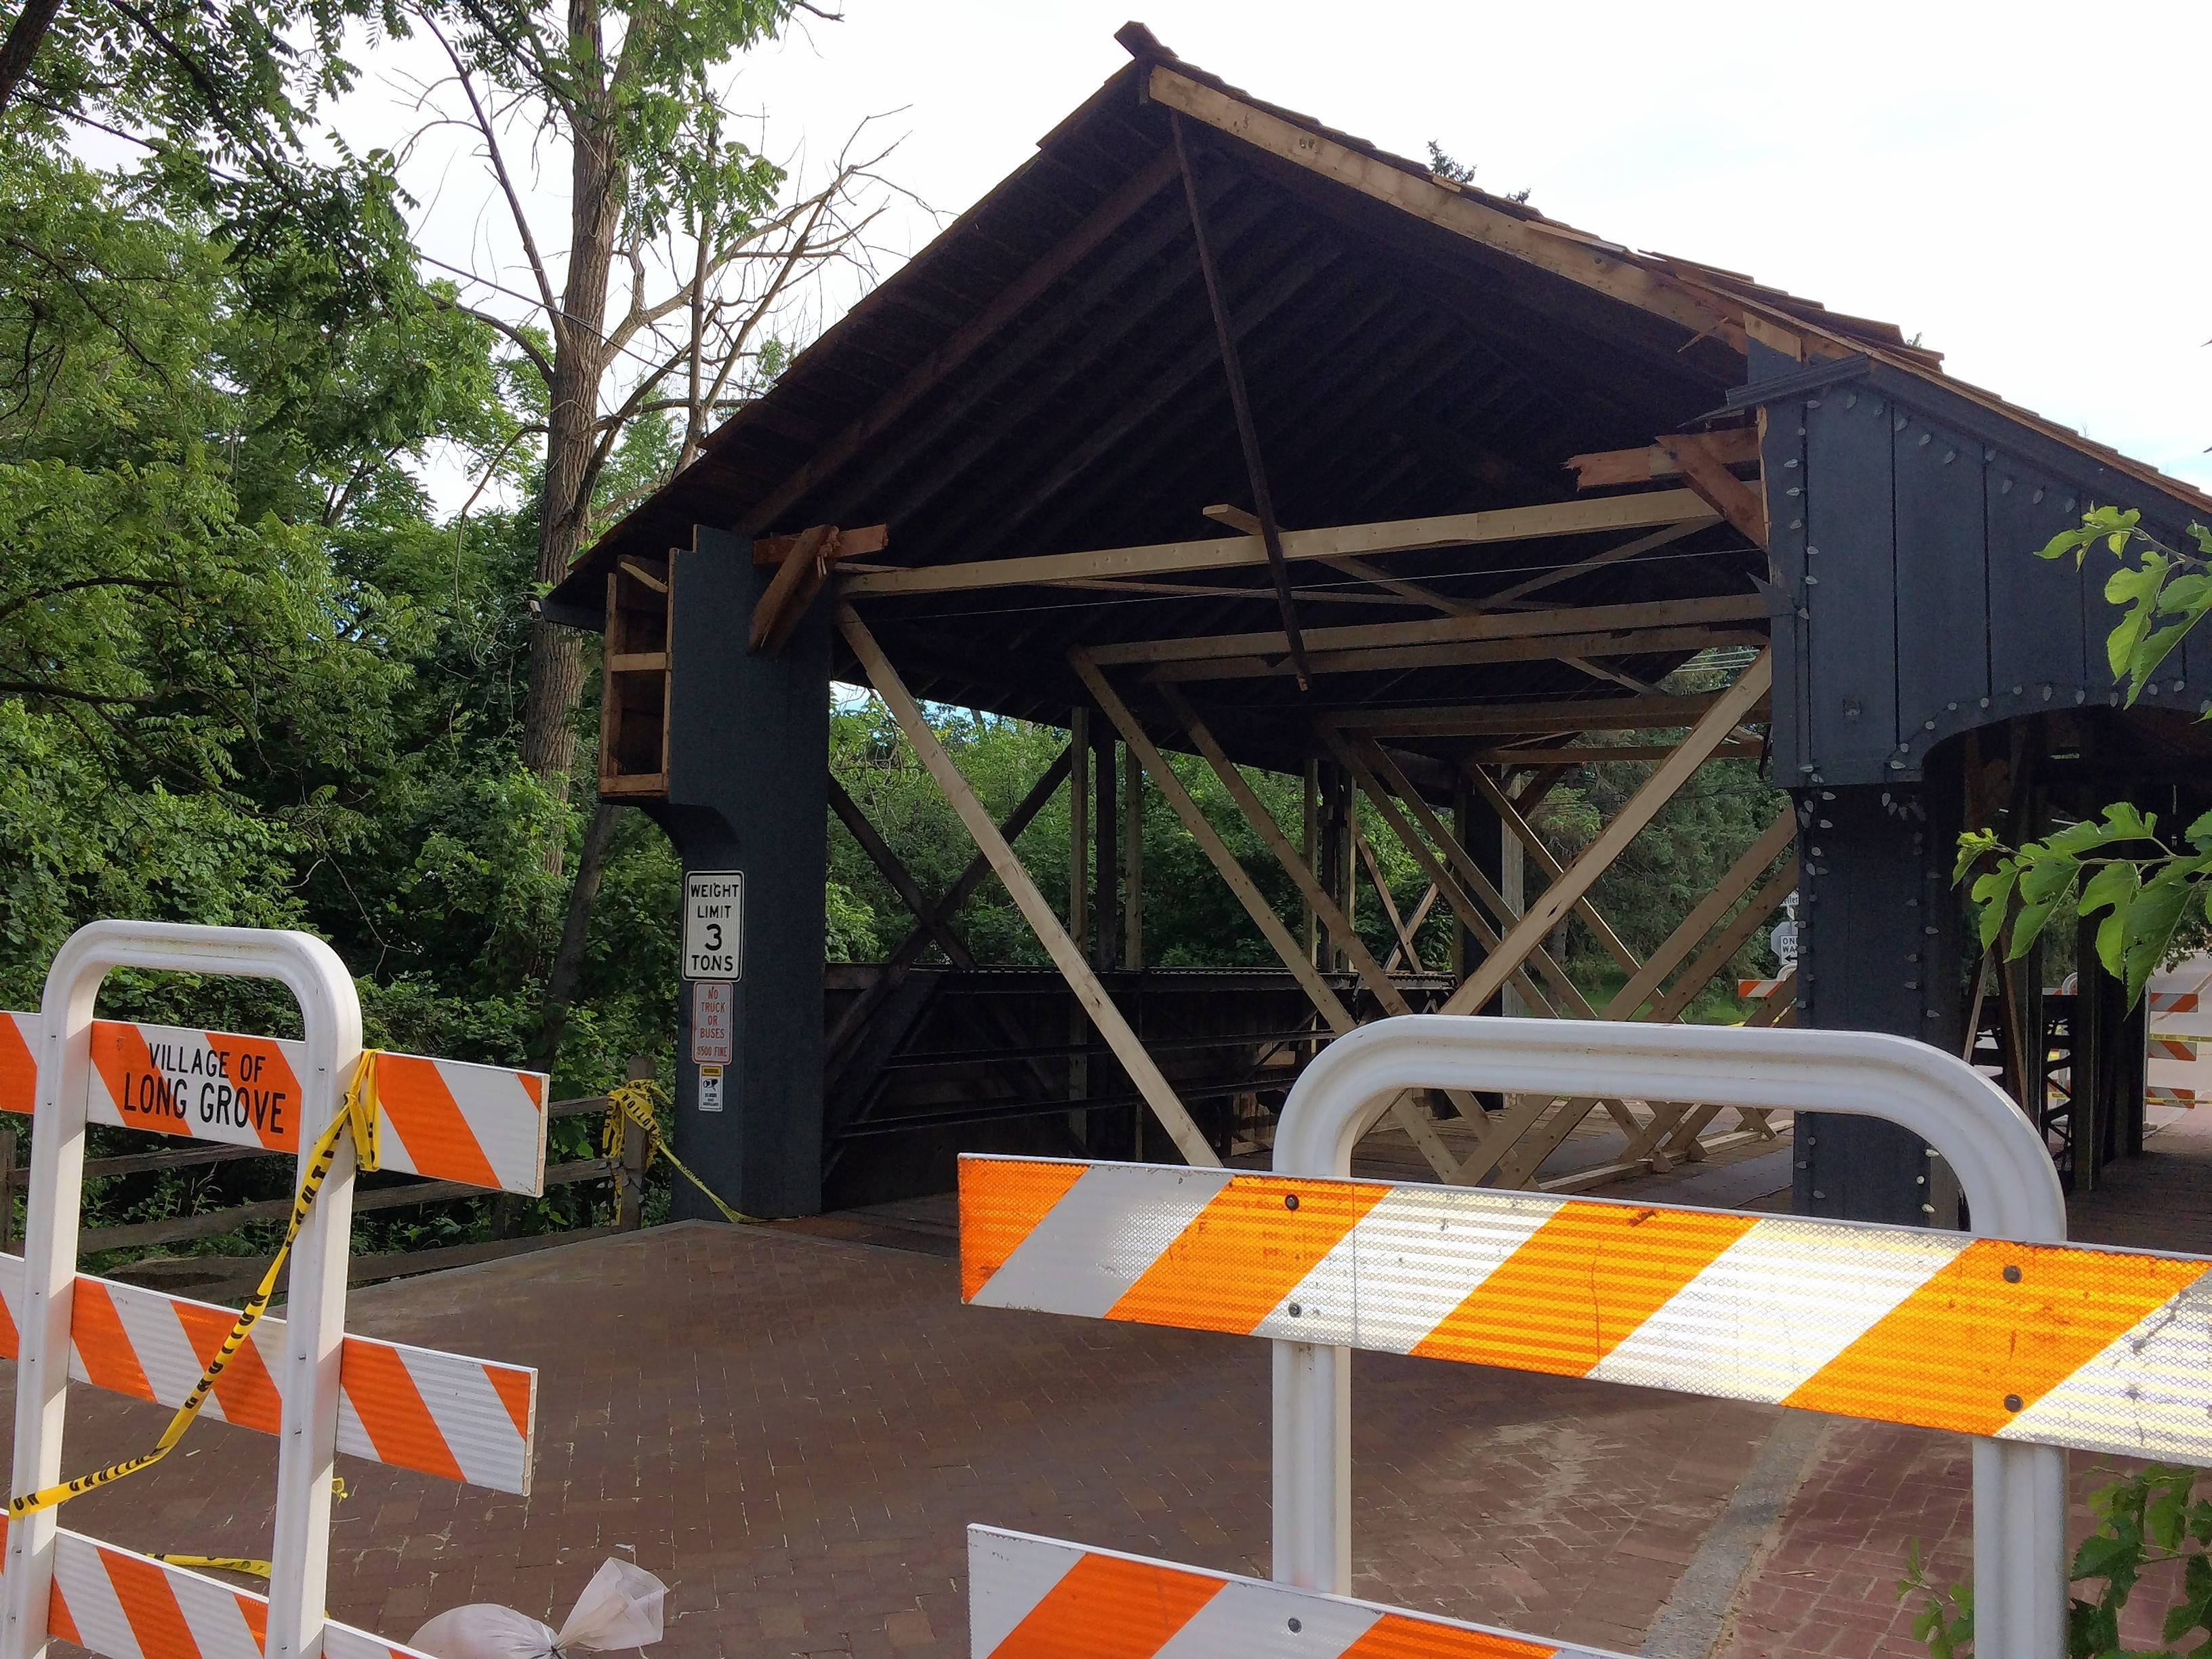 Long Grove covered bridge to be closed 9 or 10 months, 'best-case scenario'